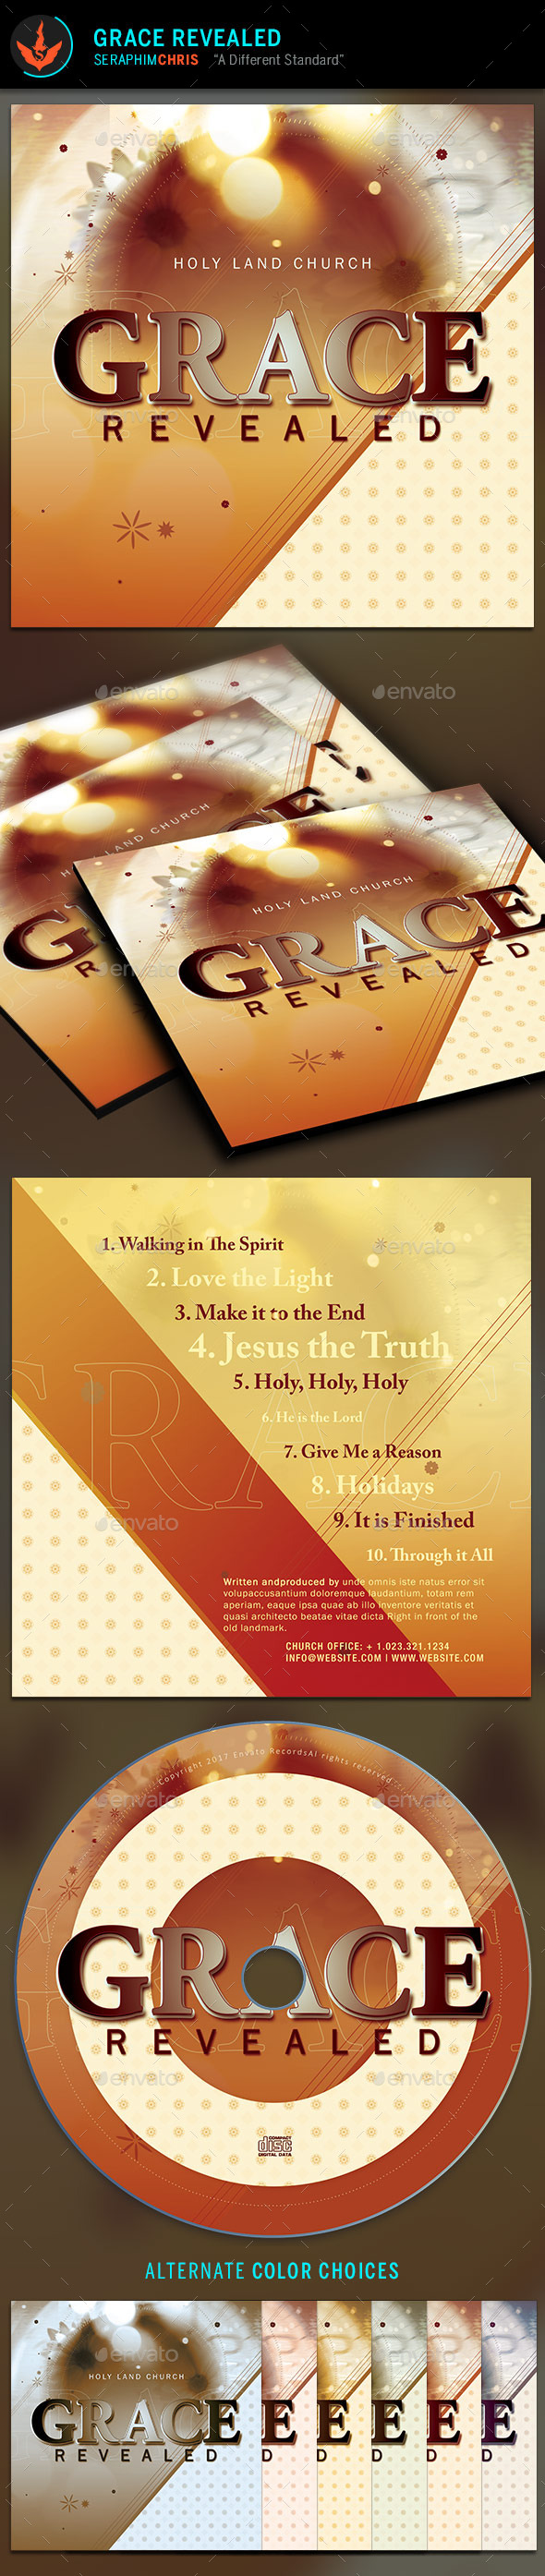 GraphicRiver Grace Revealed CD Artwork Template 9781802